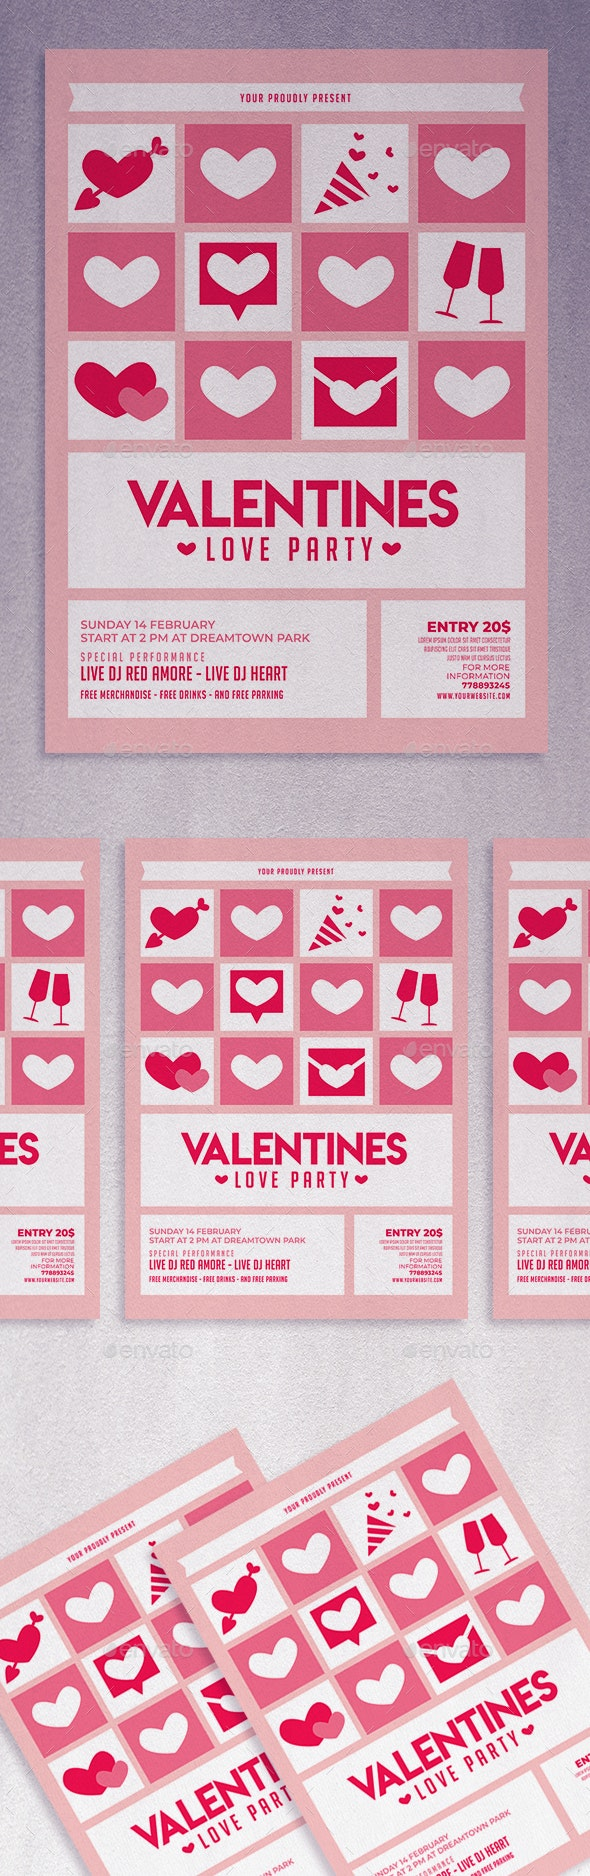 Valentines Love Party Flyer - Invitations Cards & Invites